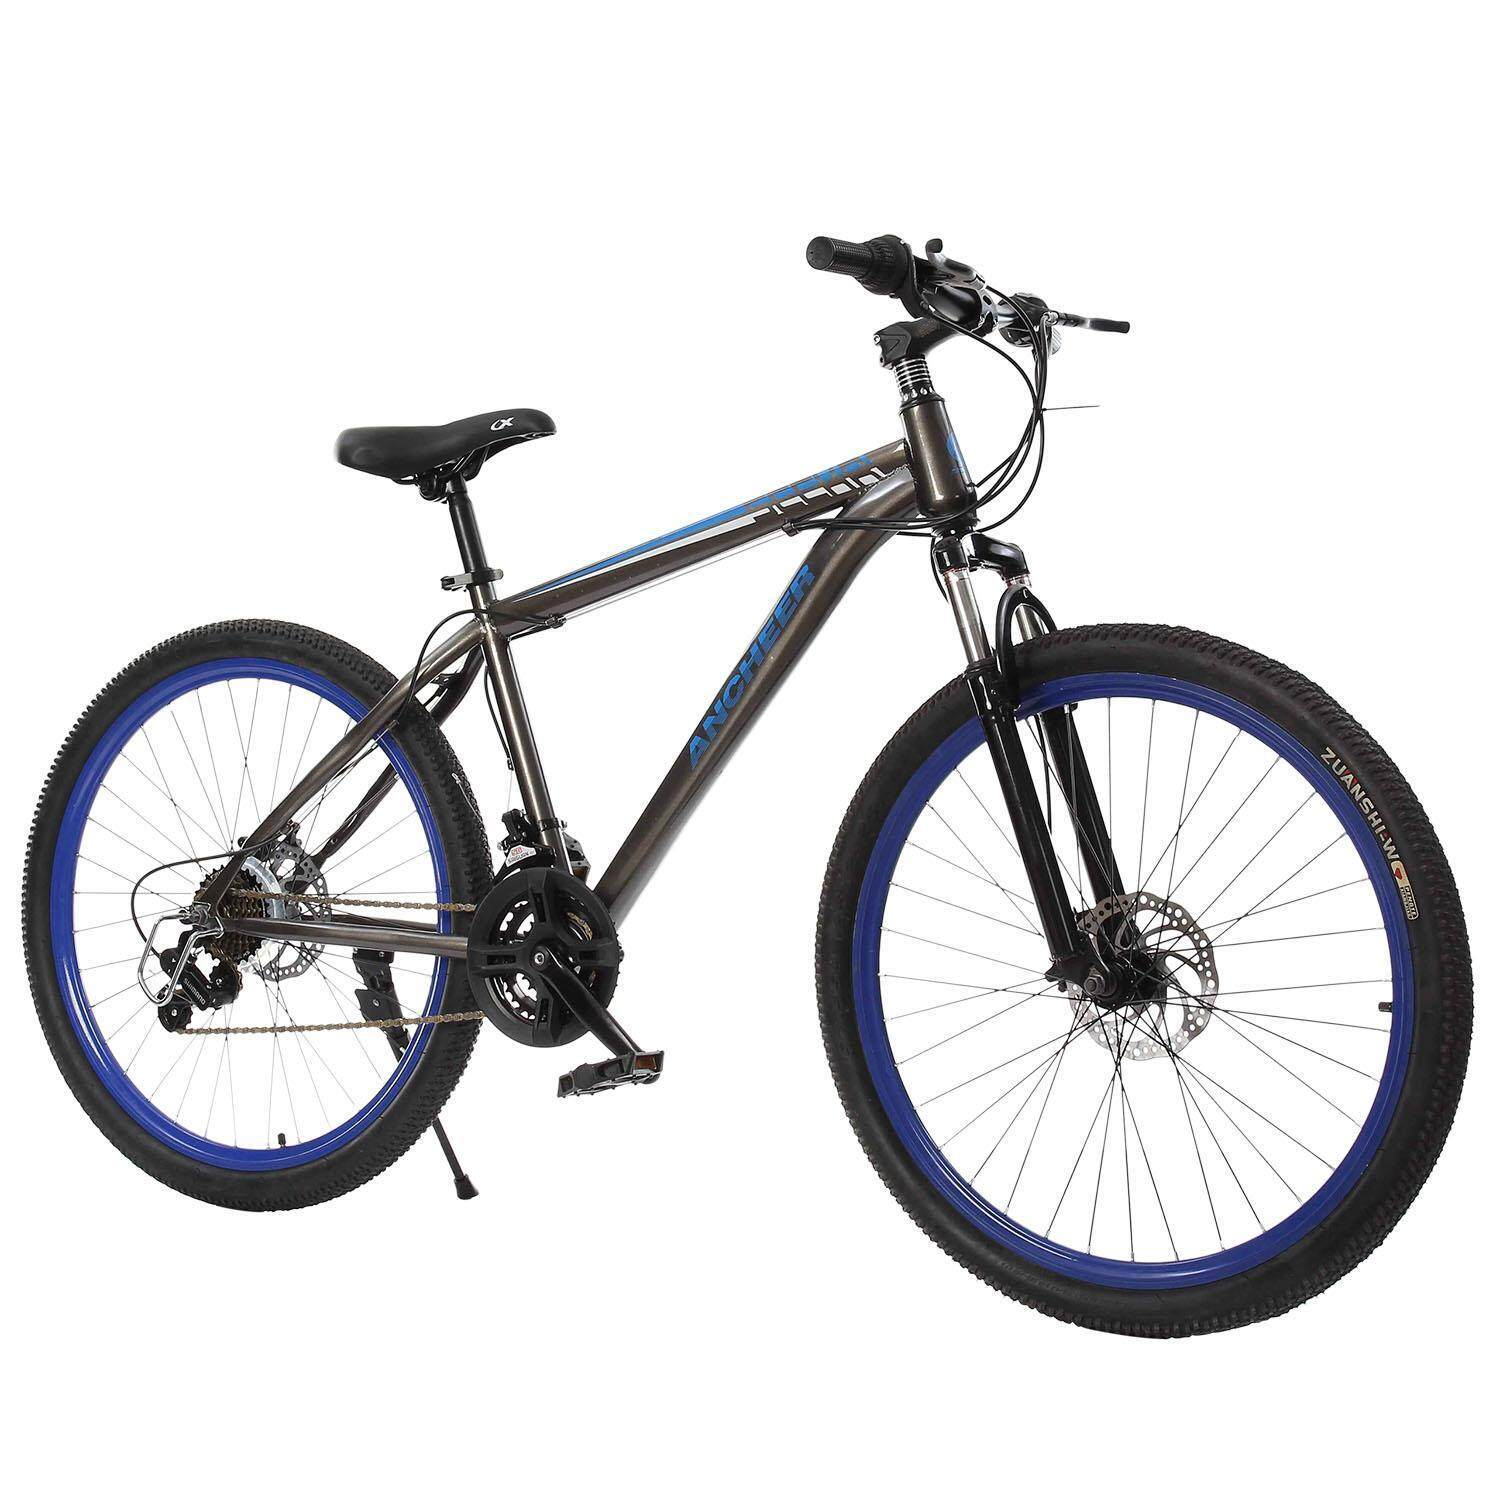 Supercart 27.5 Inch 21 Speed Hybrid Bike Men Seeker Mountain Bike By Supercart.